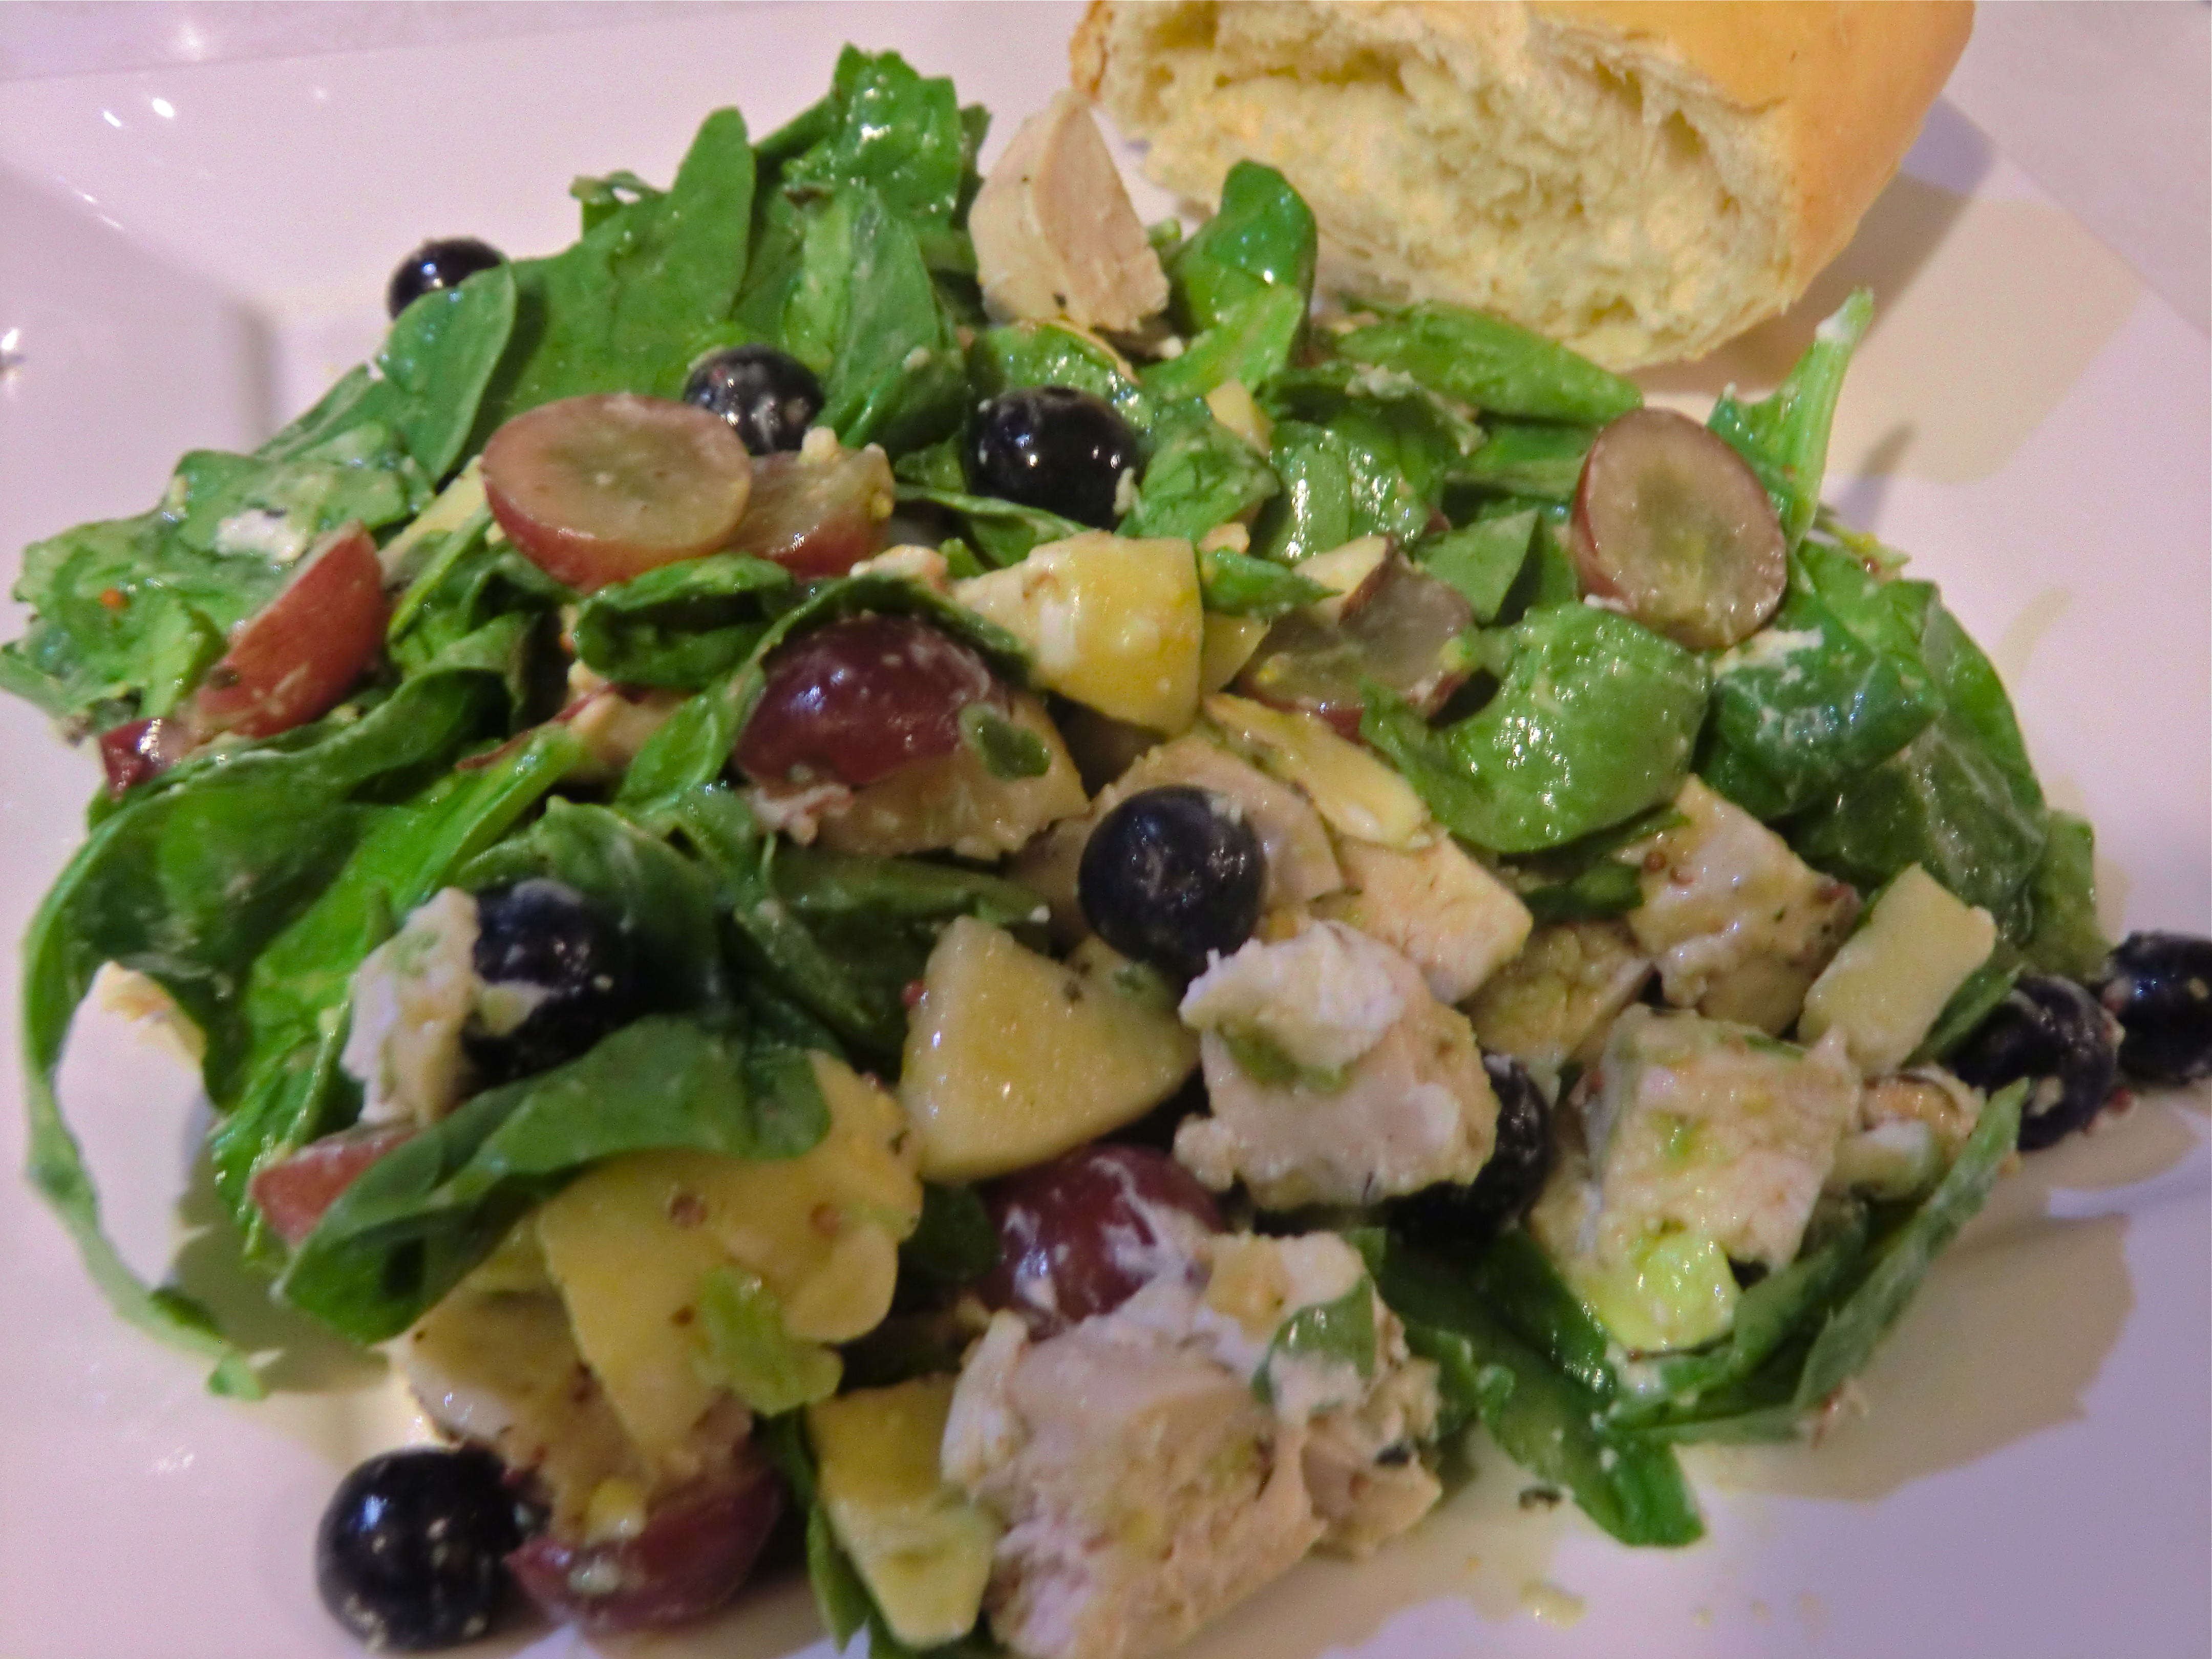 Spinach salad with chicken, fruit and goat cheese | Life With a Little ...